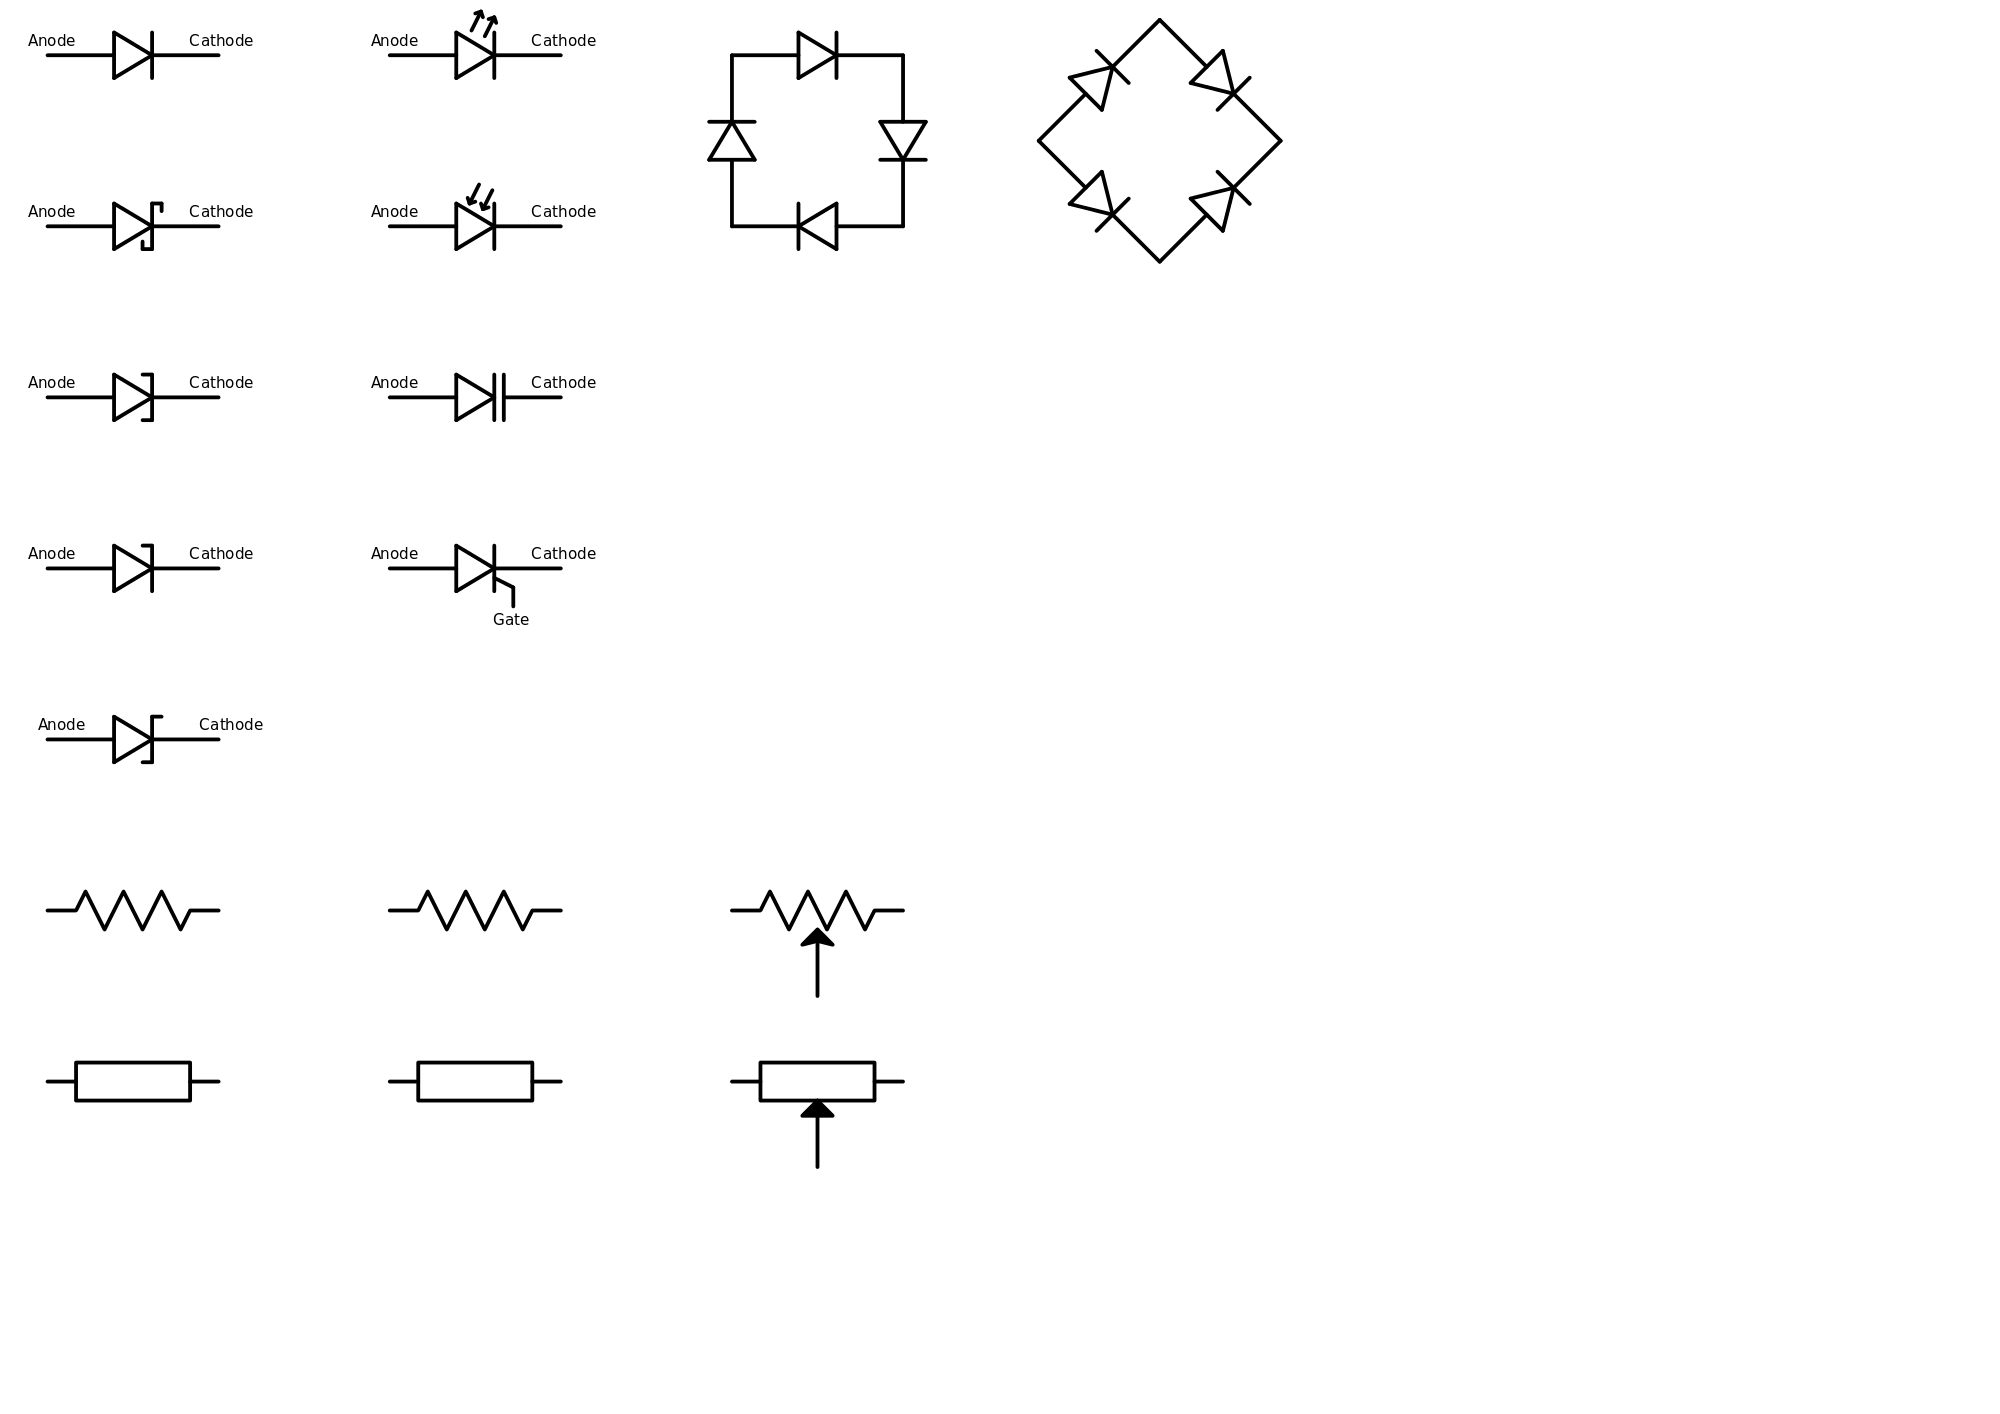 hight resolution of in the above image some of the electrical symbols are presented so basically these are just the representation of different electronics and electrical